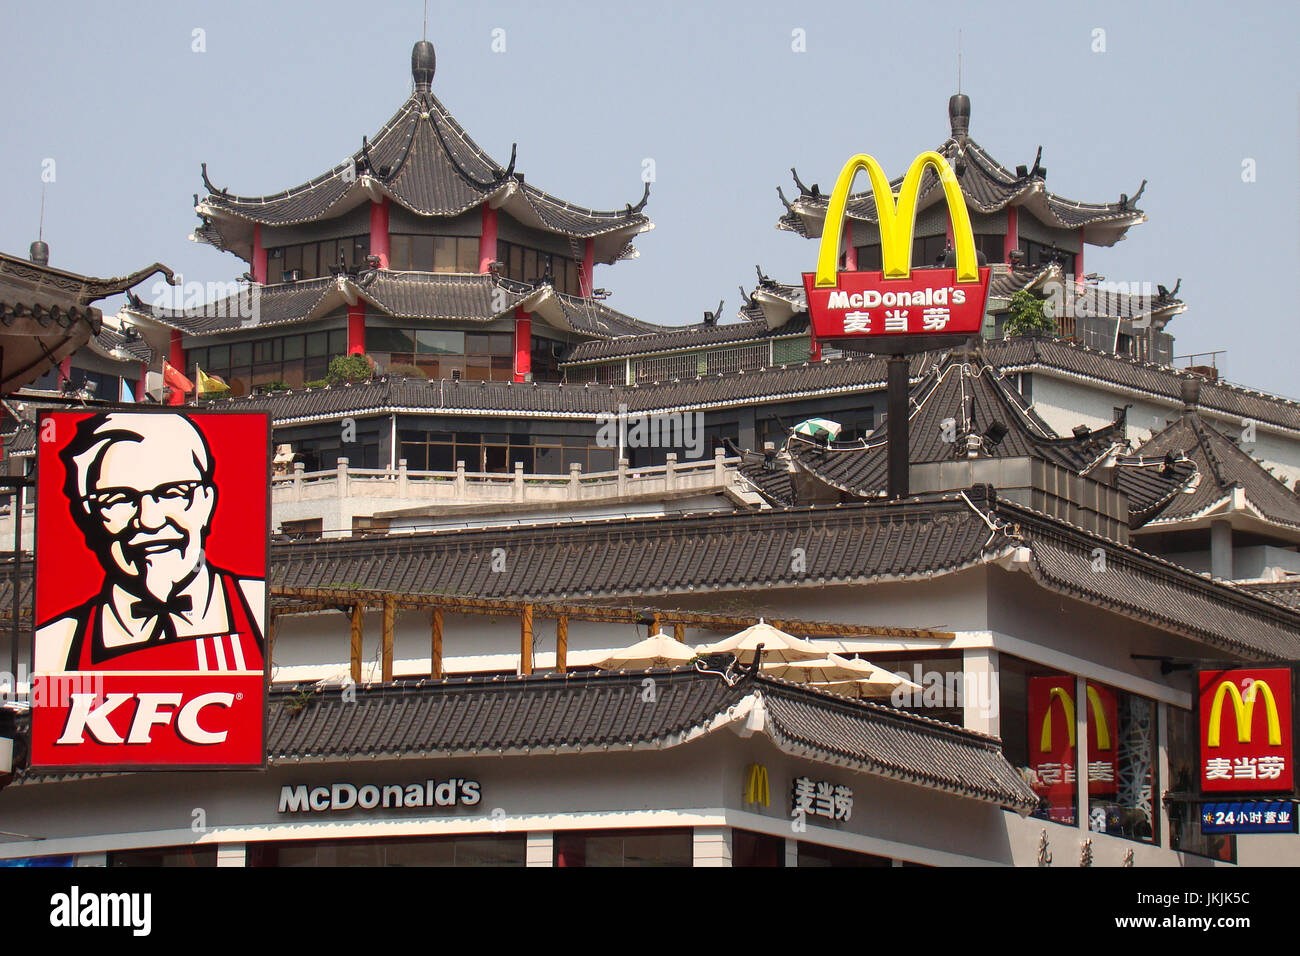 McDonalds and KFC logos above the historic DongMen District (东门区) of Shenzhen China (中国广东深圳), a contrast of architecture - Stock Image